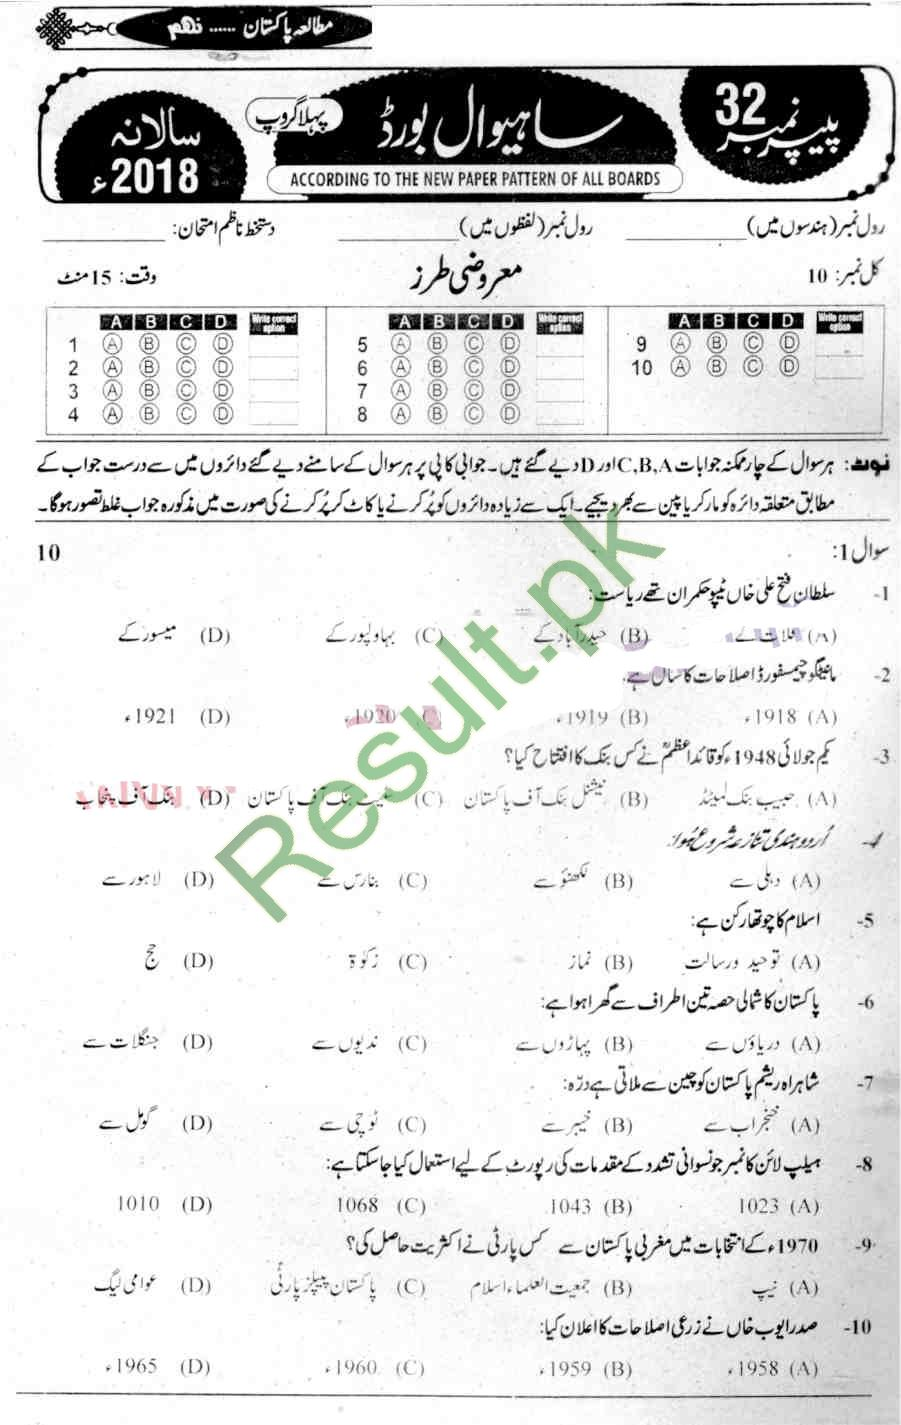 BISE Sahiwal Board Past Papers 2018 2019 Matric, SSC Part